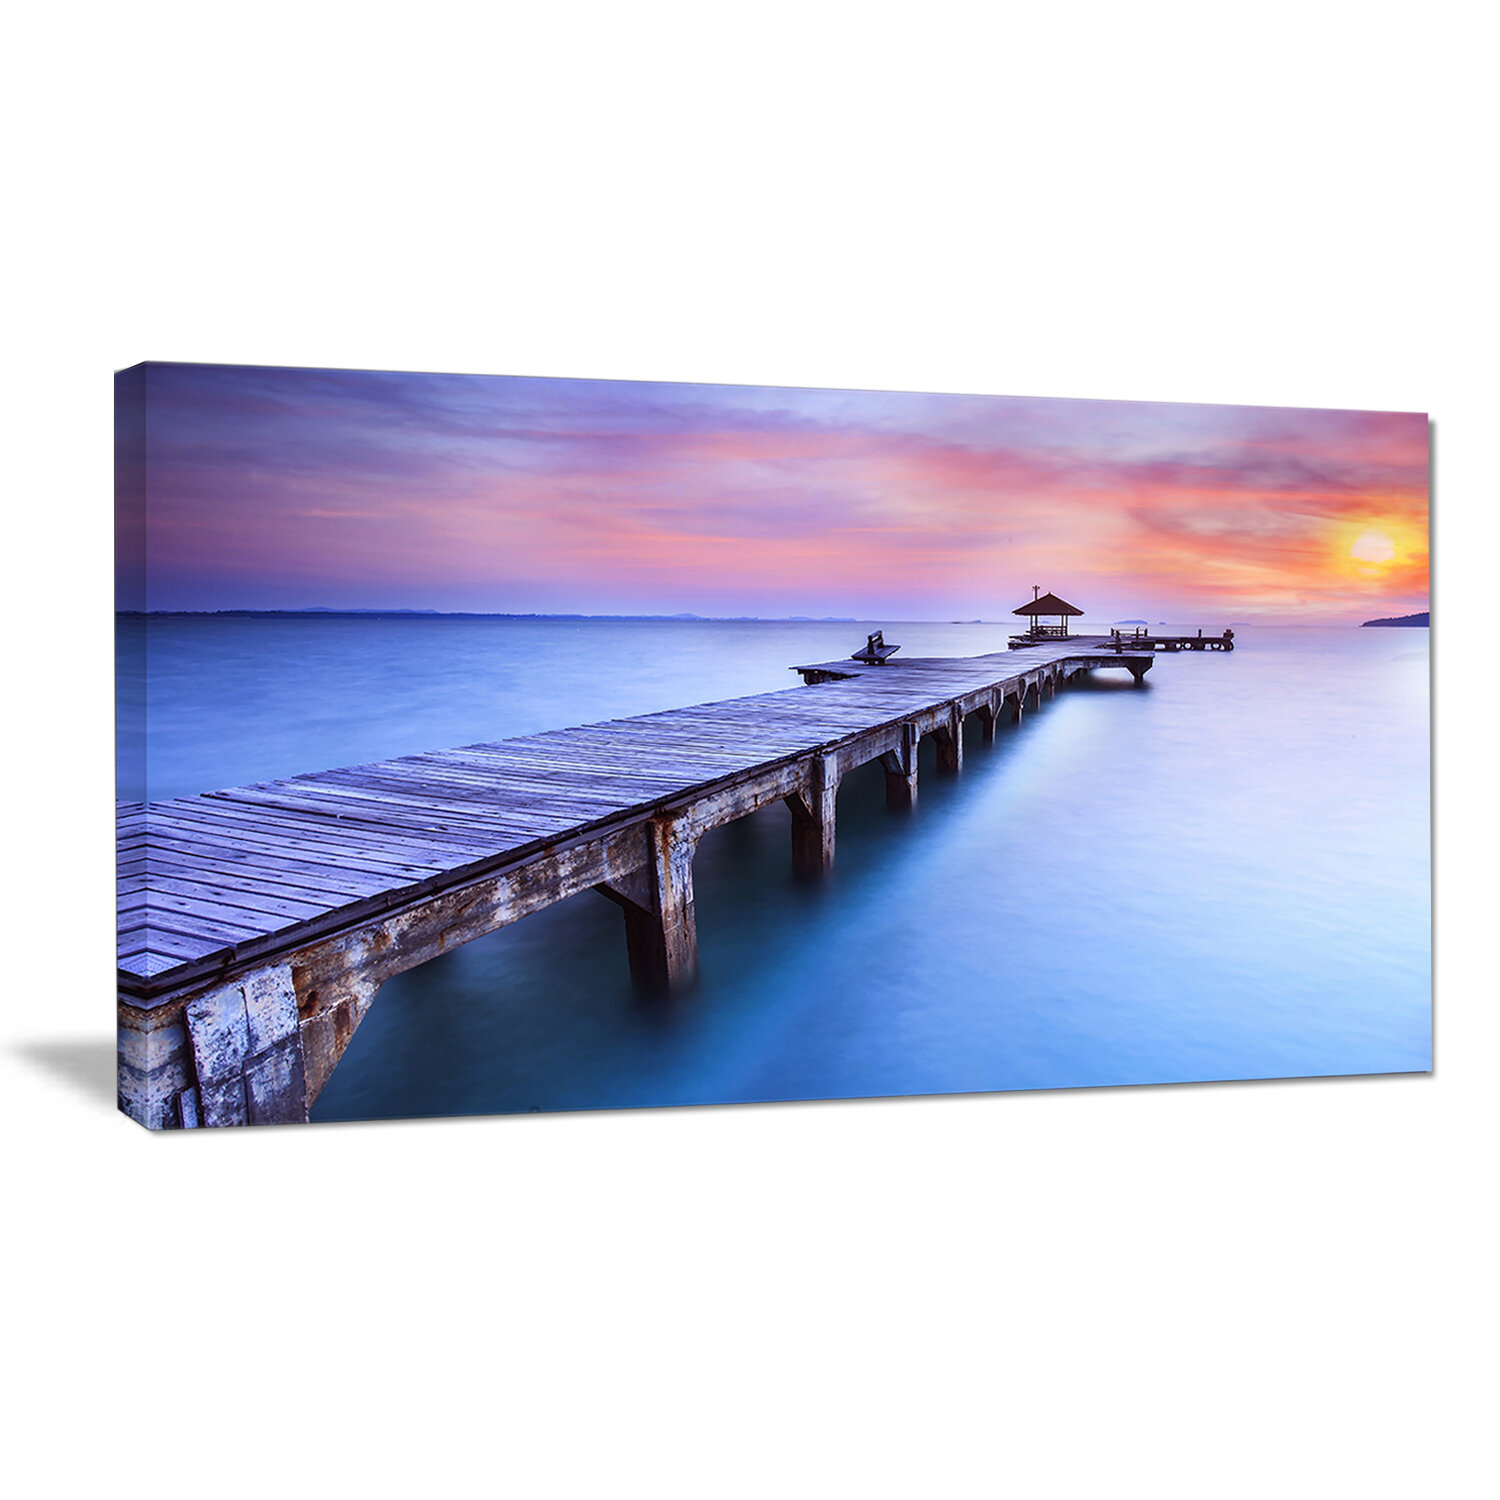 Designart Wooden Bridge Over Blue Waters Sea Pier Photographic Print On Wrapped Canvas Wayfair